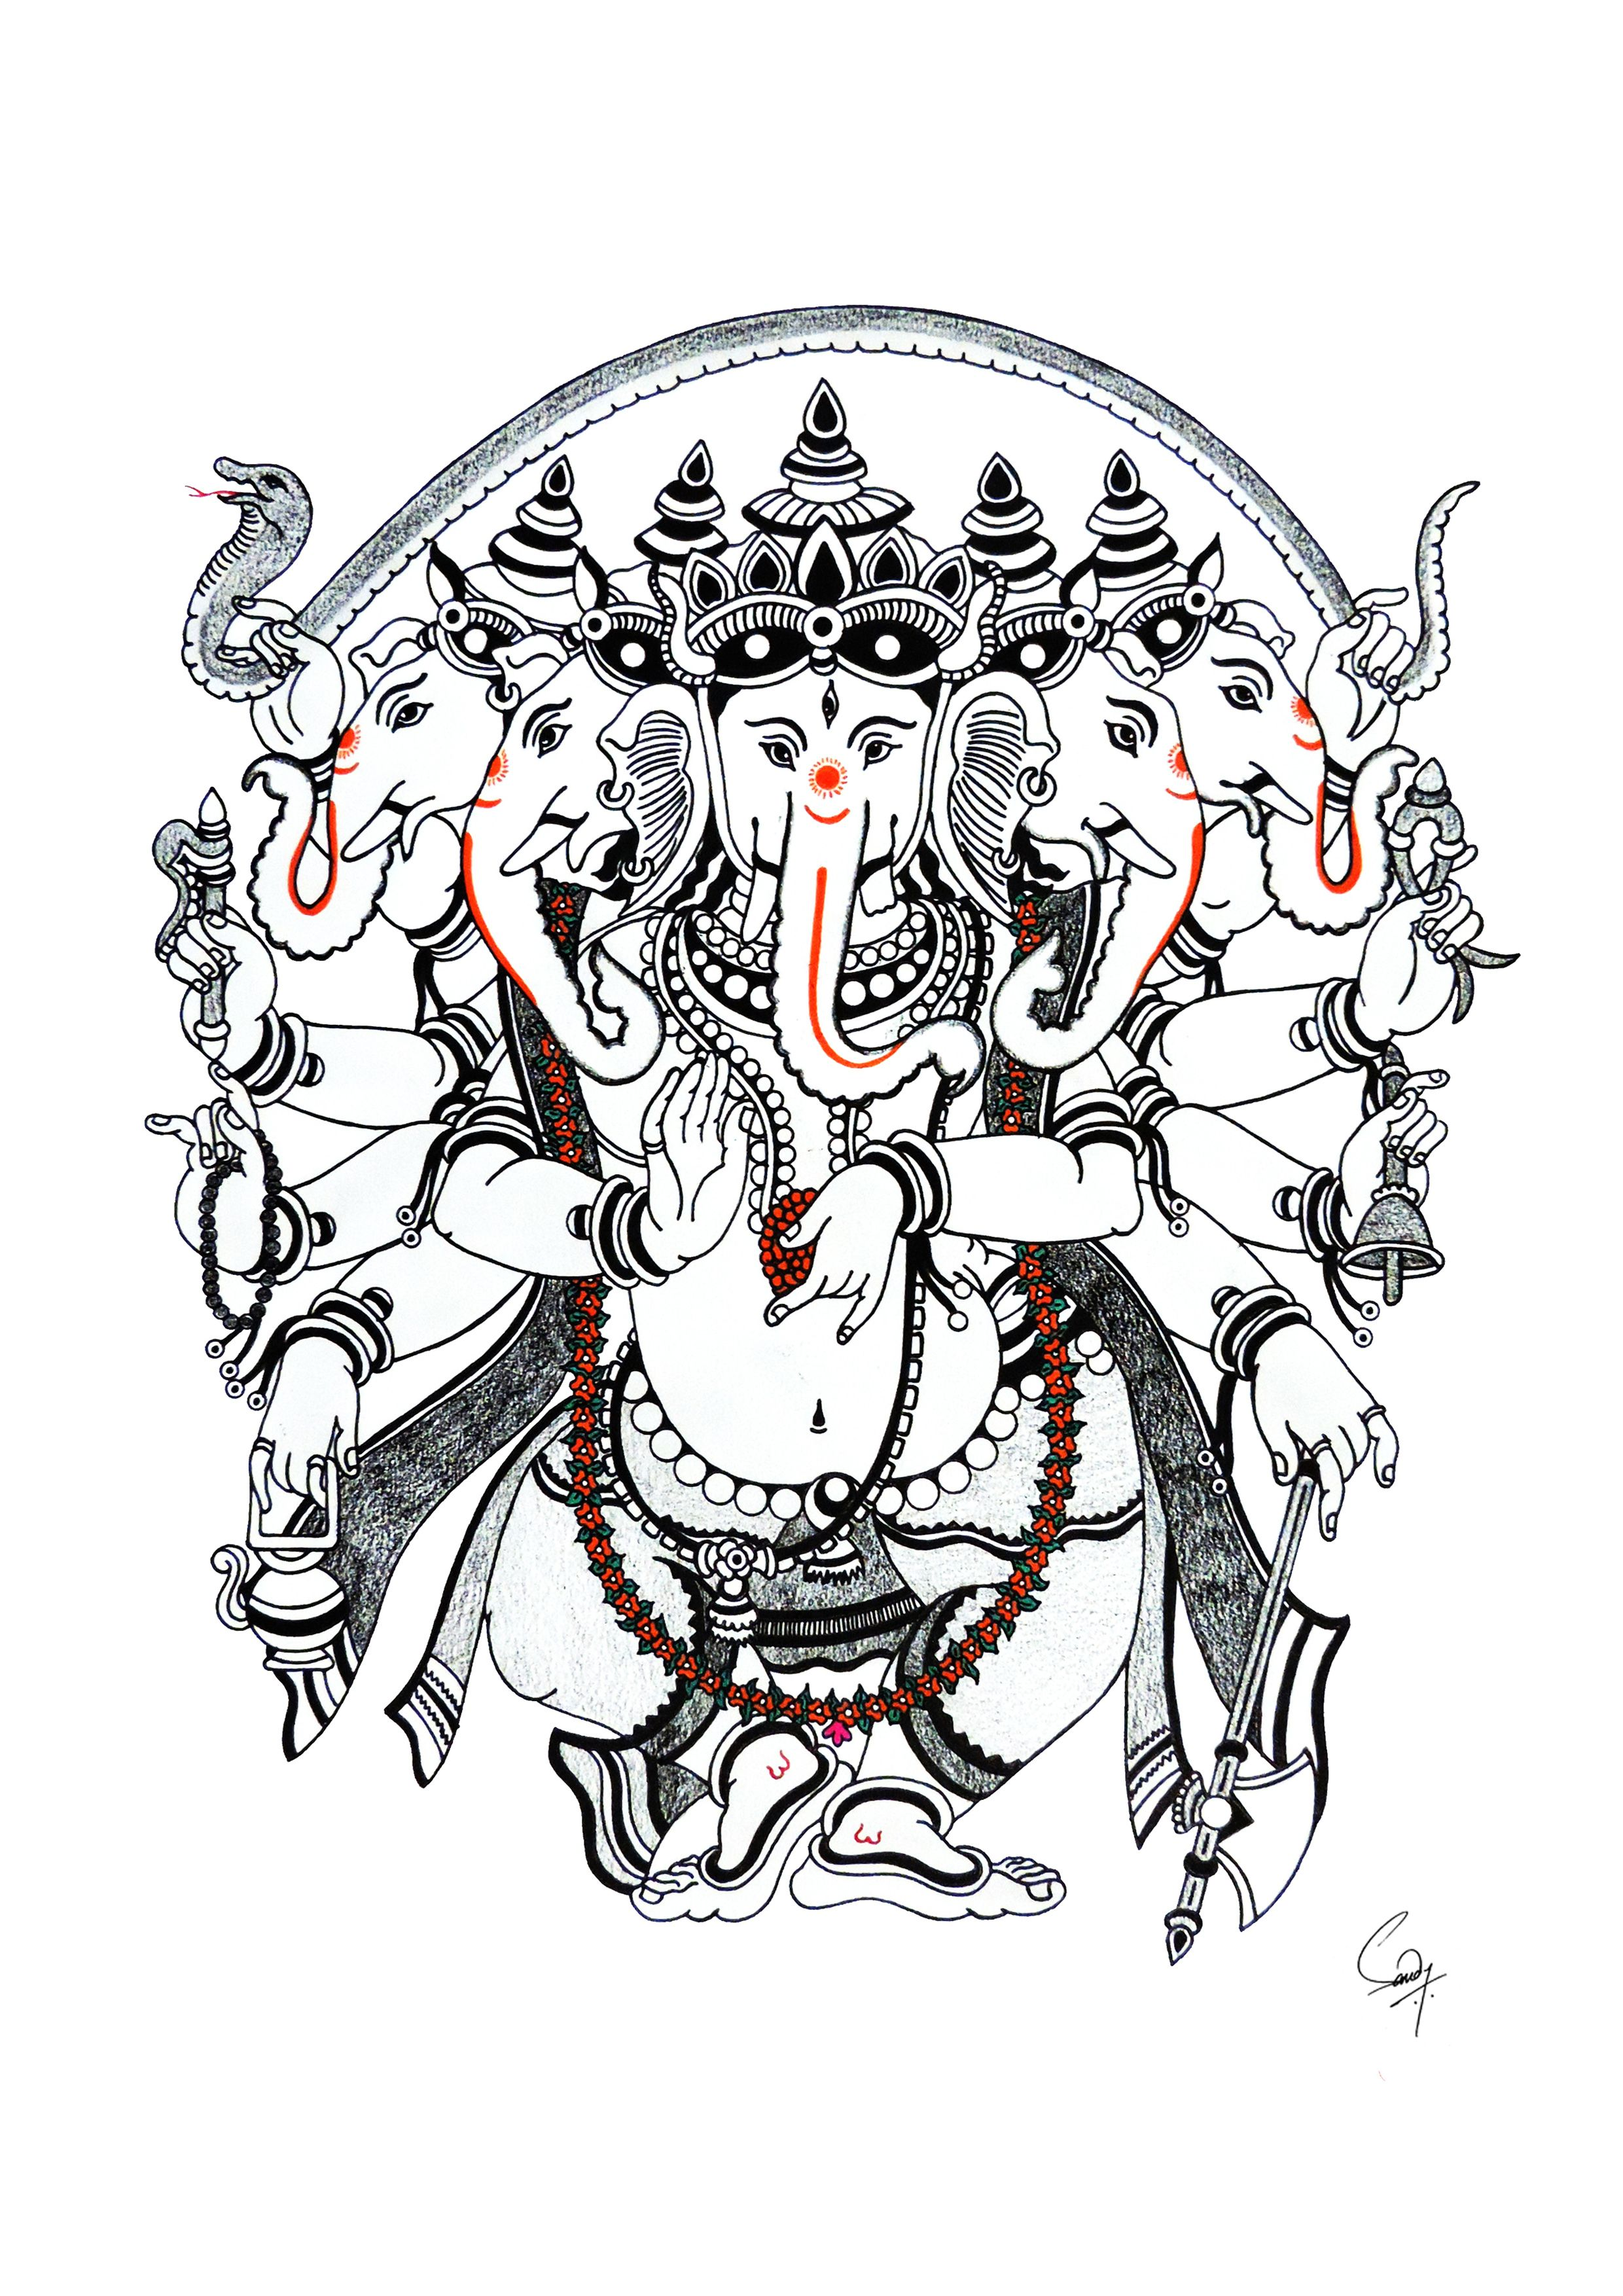 Ganpati Painting Panchmukha Ganesha Art Indian Art Paintings Ganesh Art